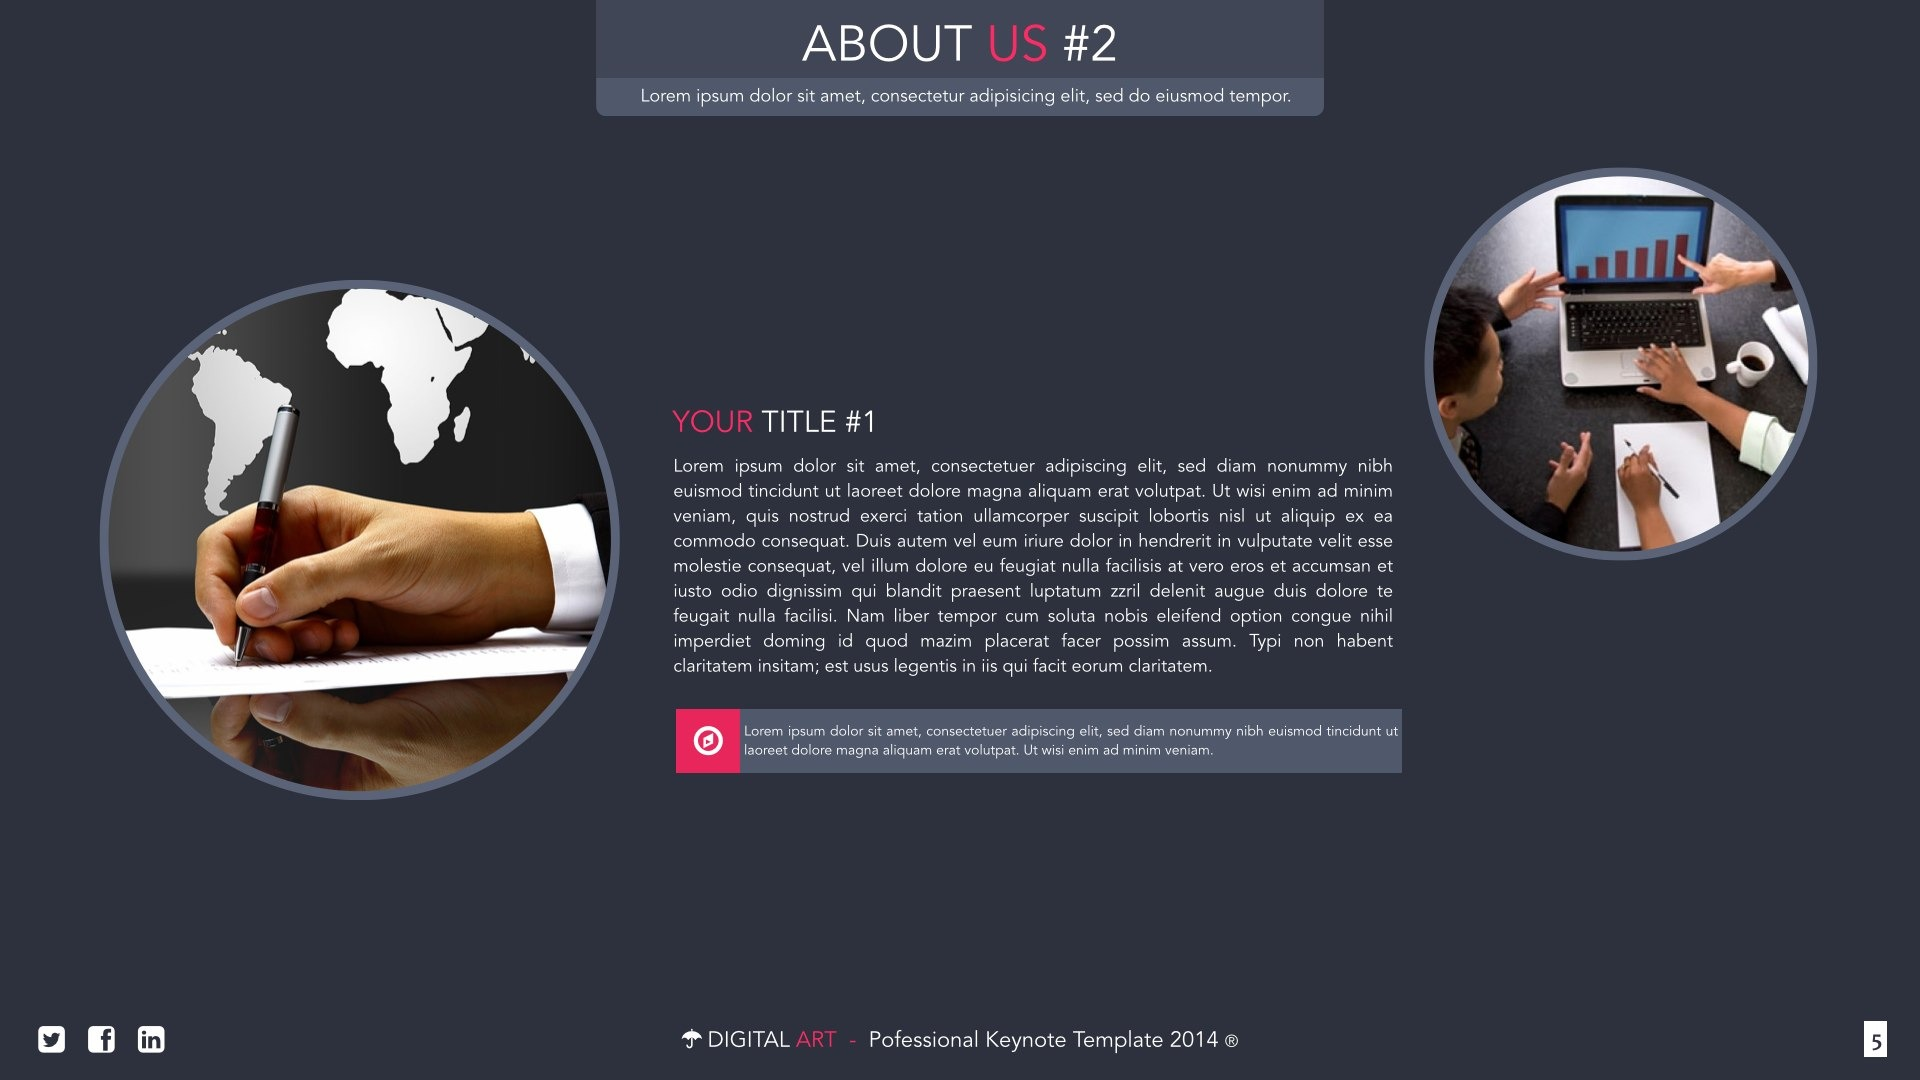 Digital Art - Creative Powerpoint Template by VigitalArt ...